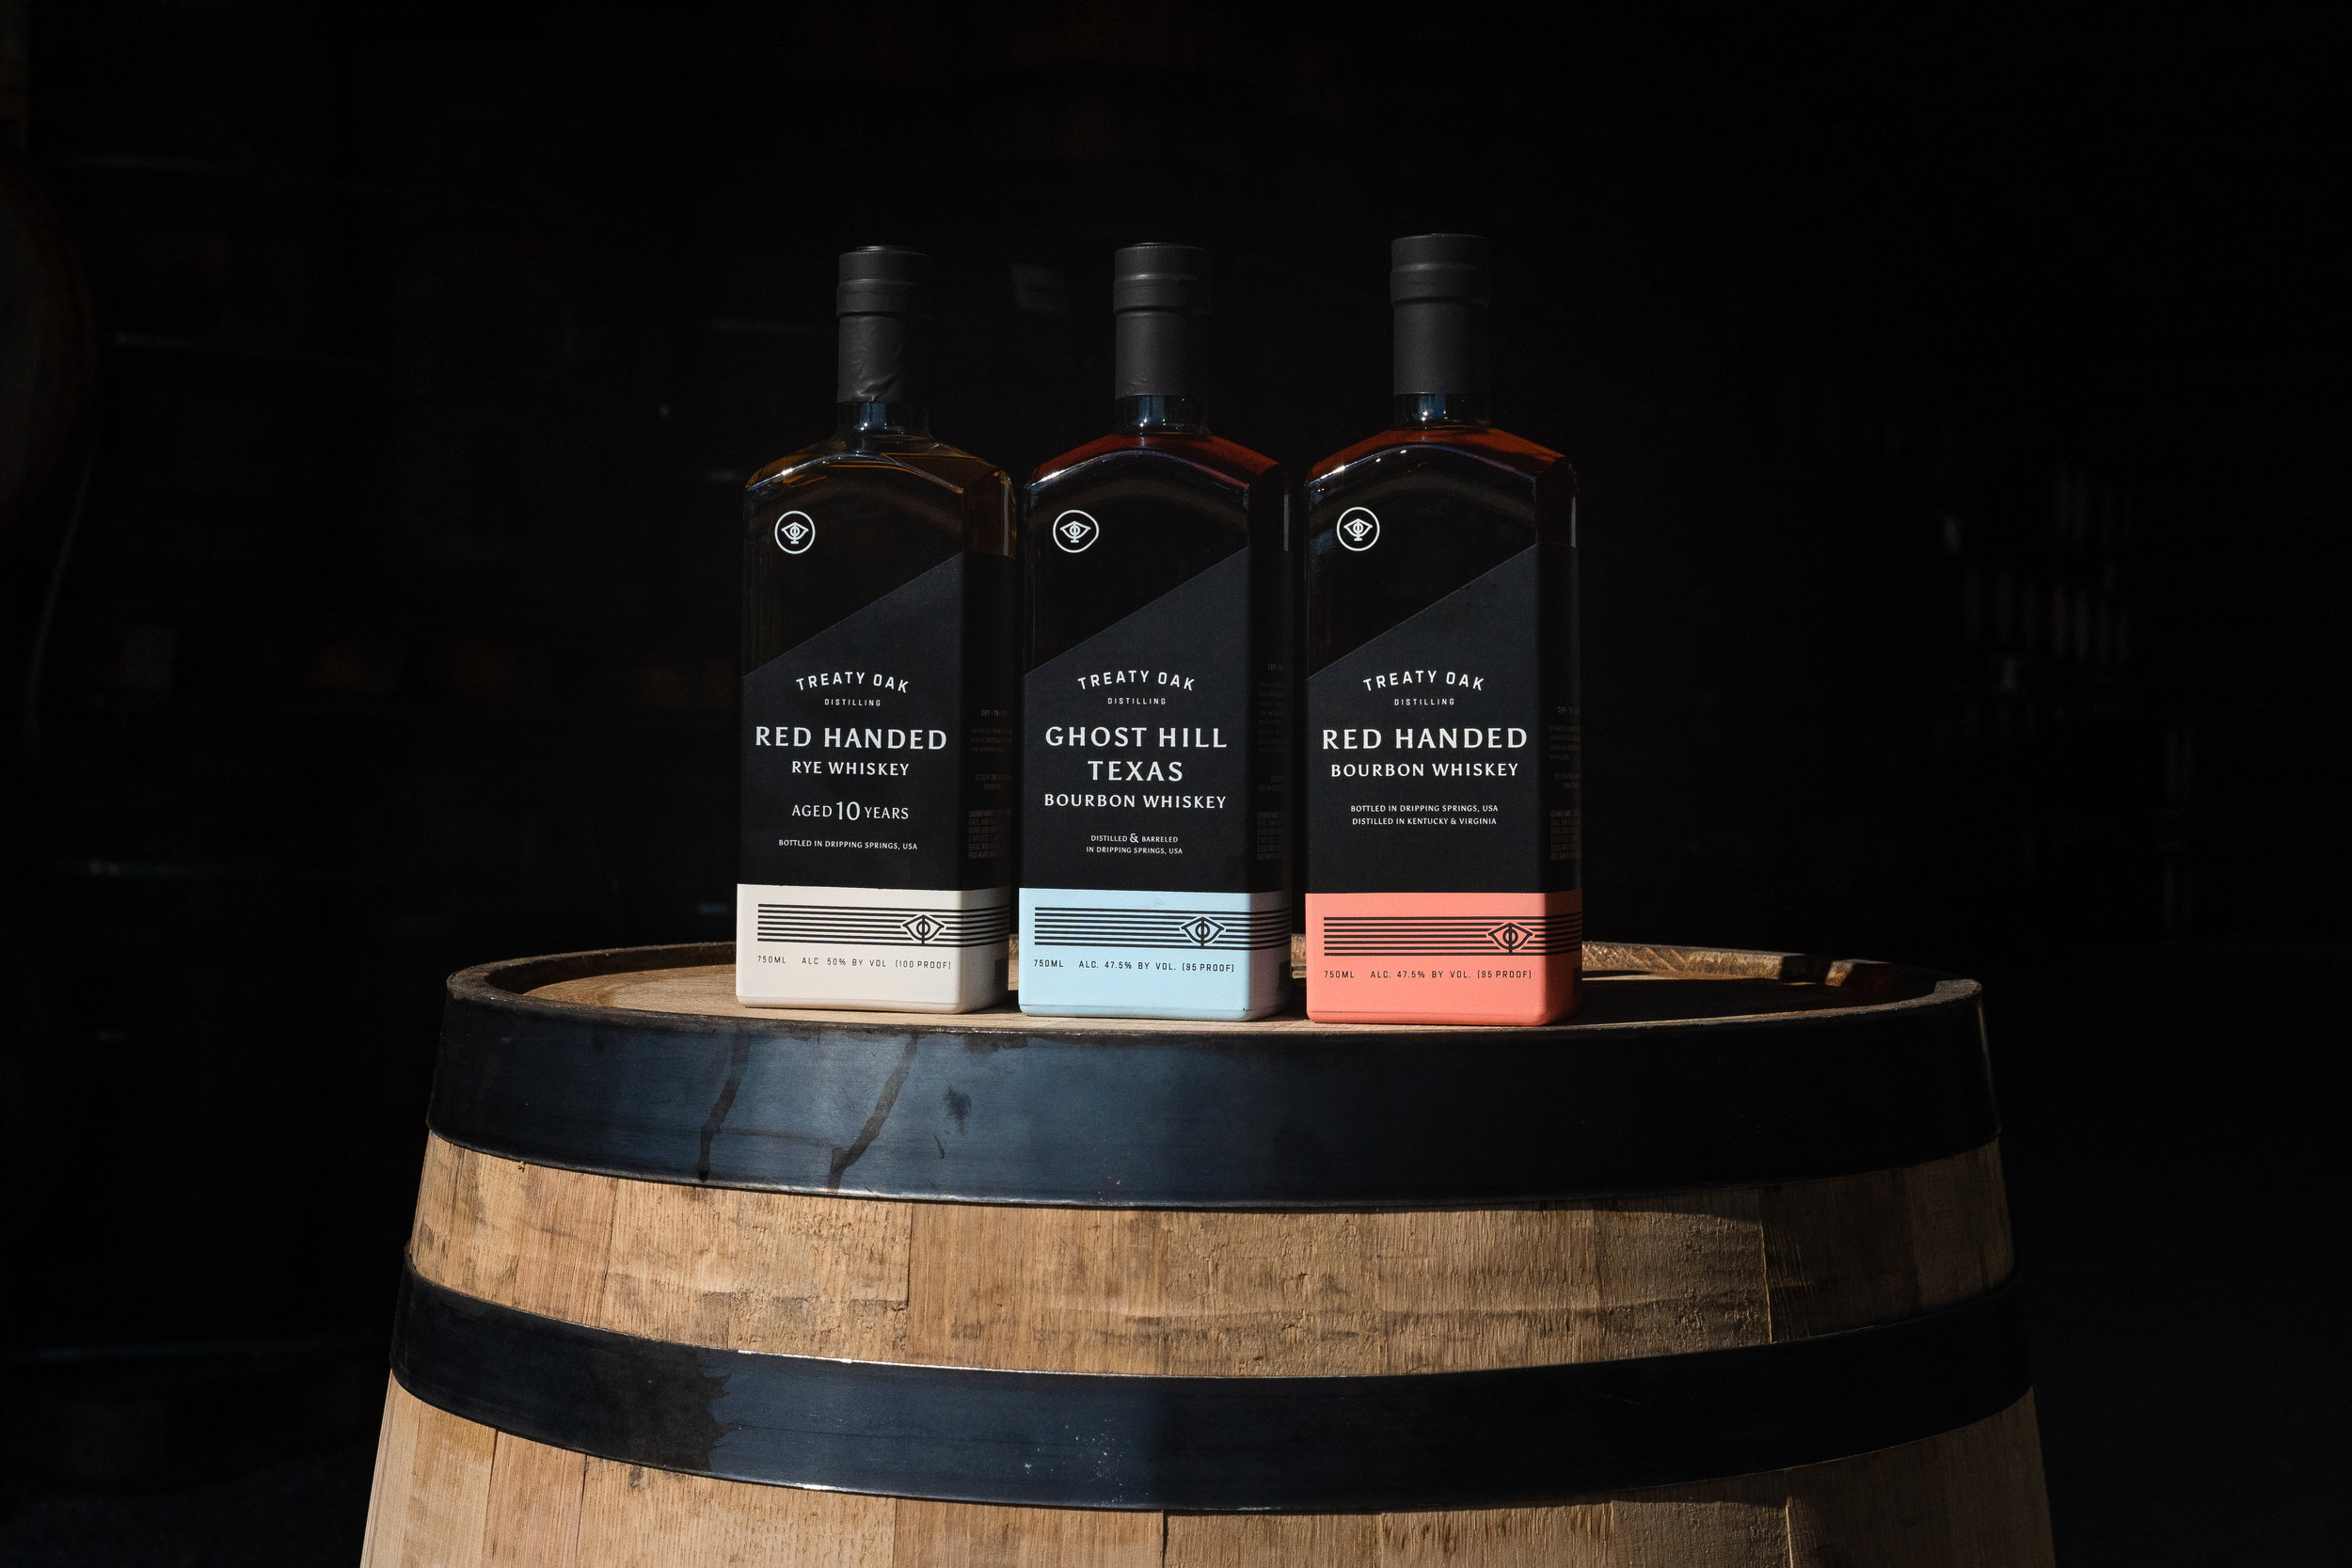 THEMANUAL.COM:  TREATY OAK DISTILLING'S EXPERIMENTS RUN WILD IN TEXAS   - March 4, 2019  In the foothills of Texas, a short drive outside Austin, Treaty Oak Distilling loves to play with booze on their sprawling 28-acre campus.   Read More